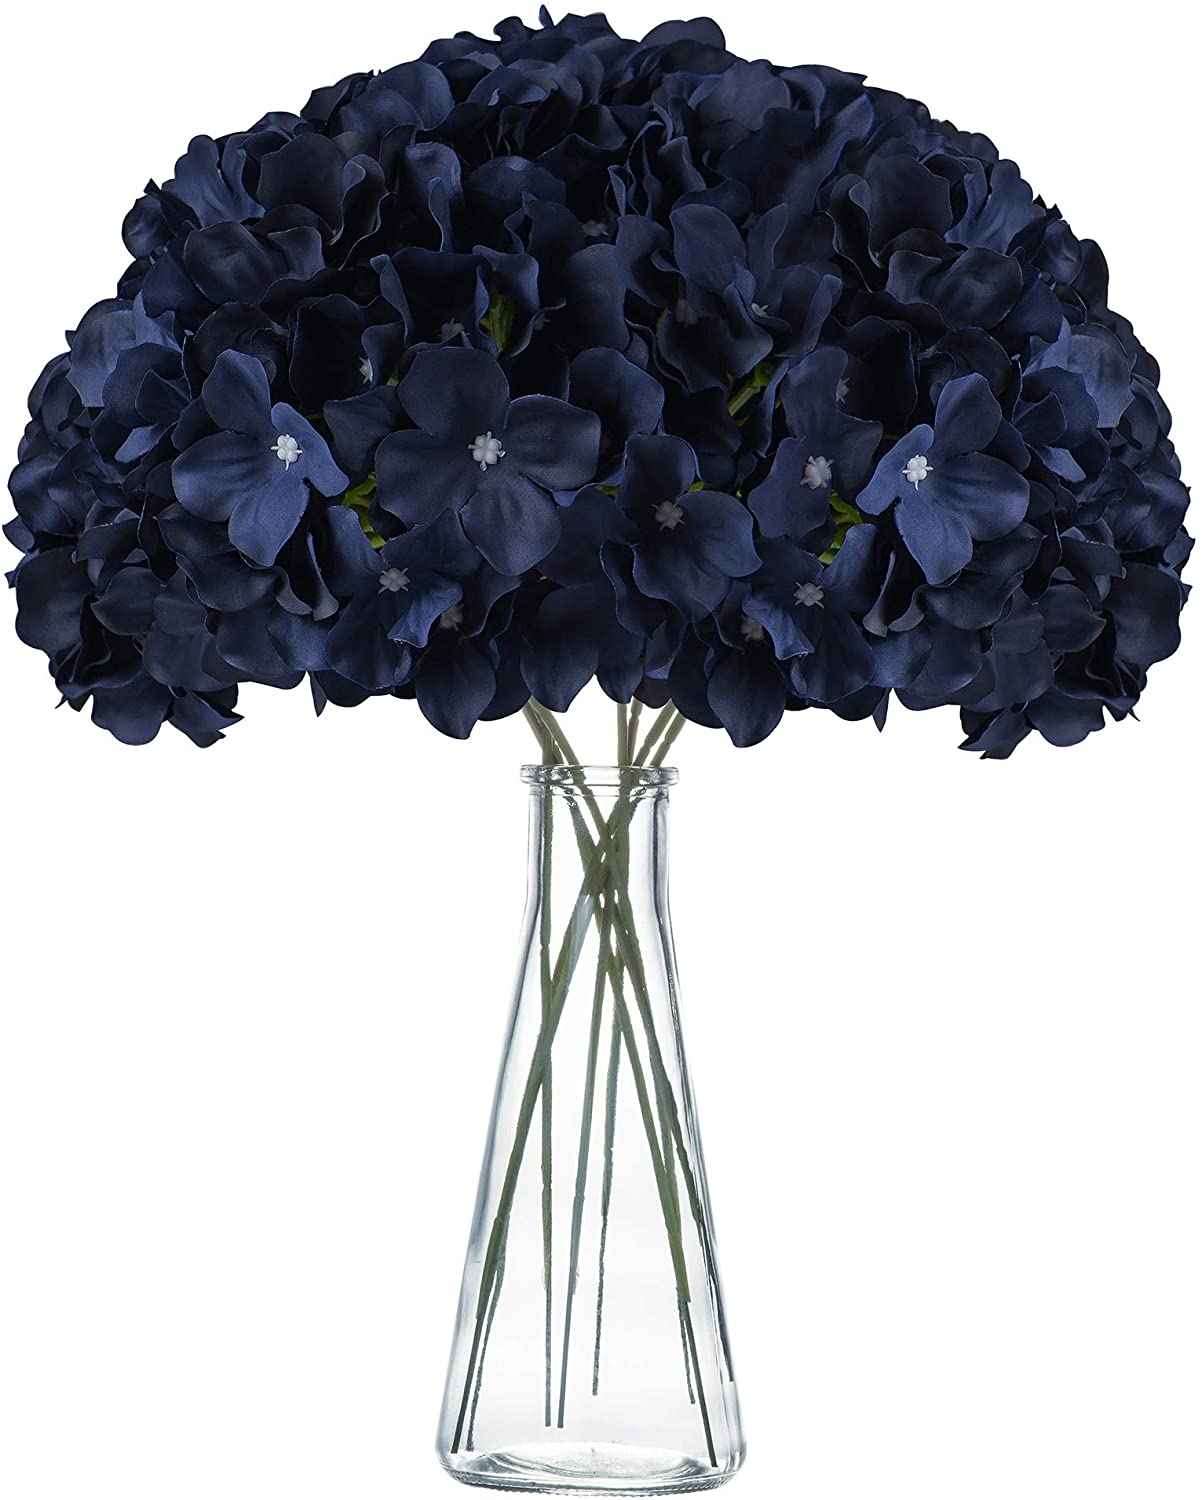 VARWANEO Navy Blue Hydrangea Silk Fake Flowers Heads with Stems, Artificial Flowers for Decoration Wedding Rome Party Shop Baby Shower,Room Decor for Bedroom Aesthetic, Pack of 12